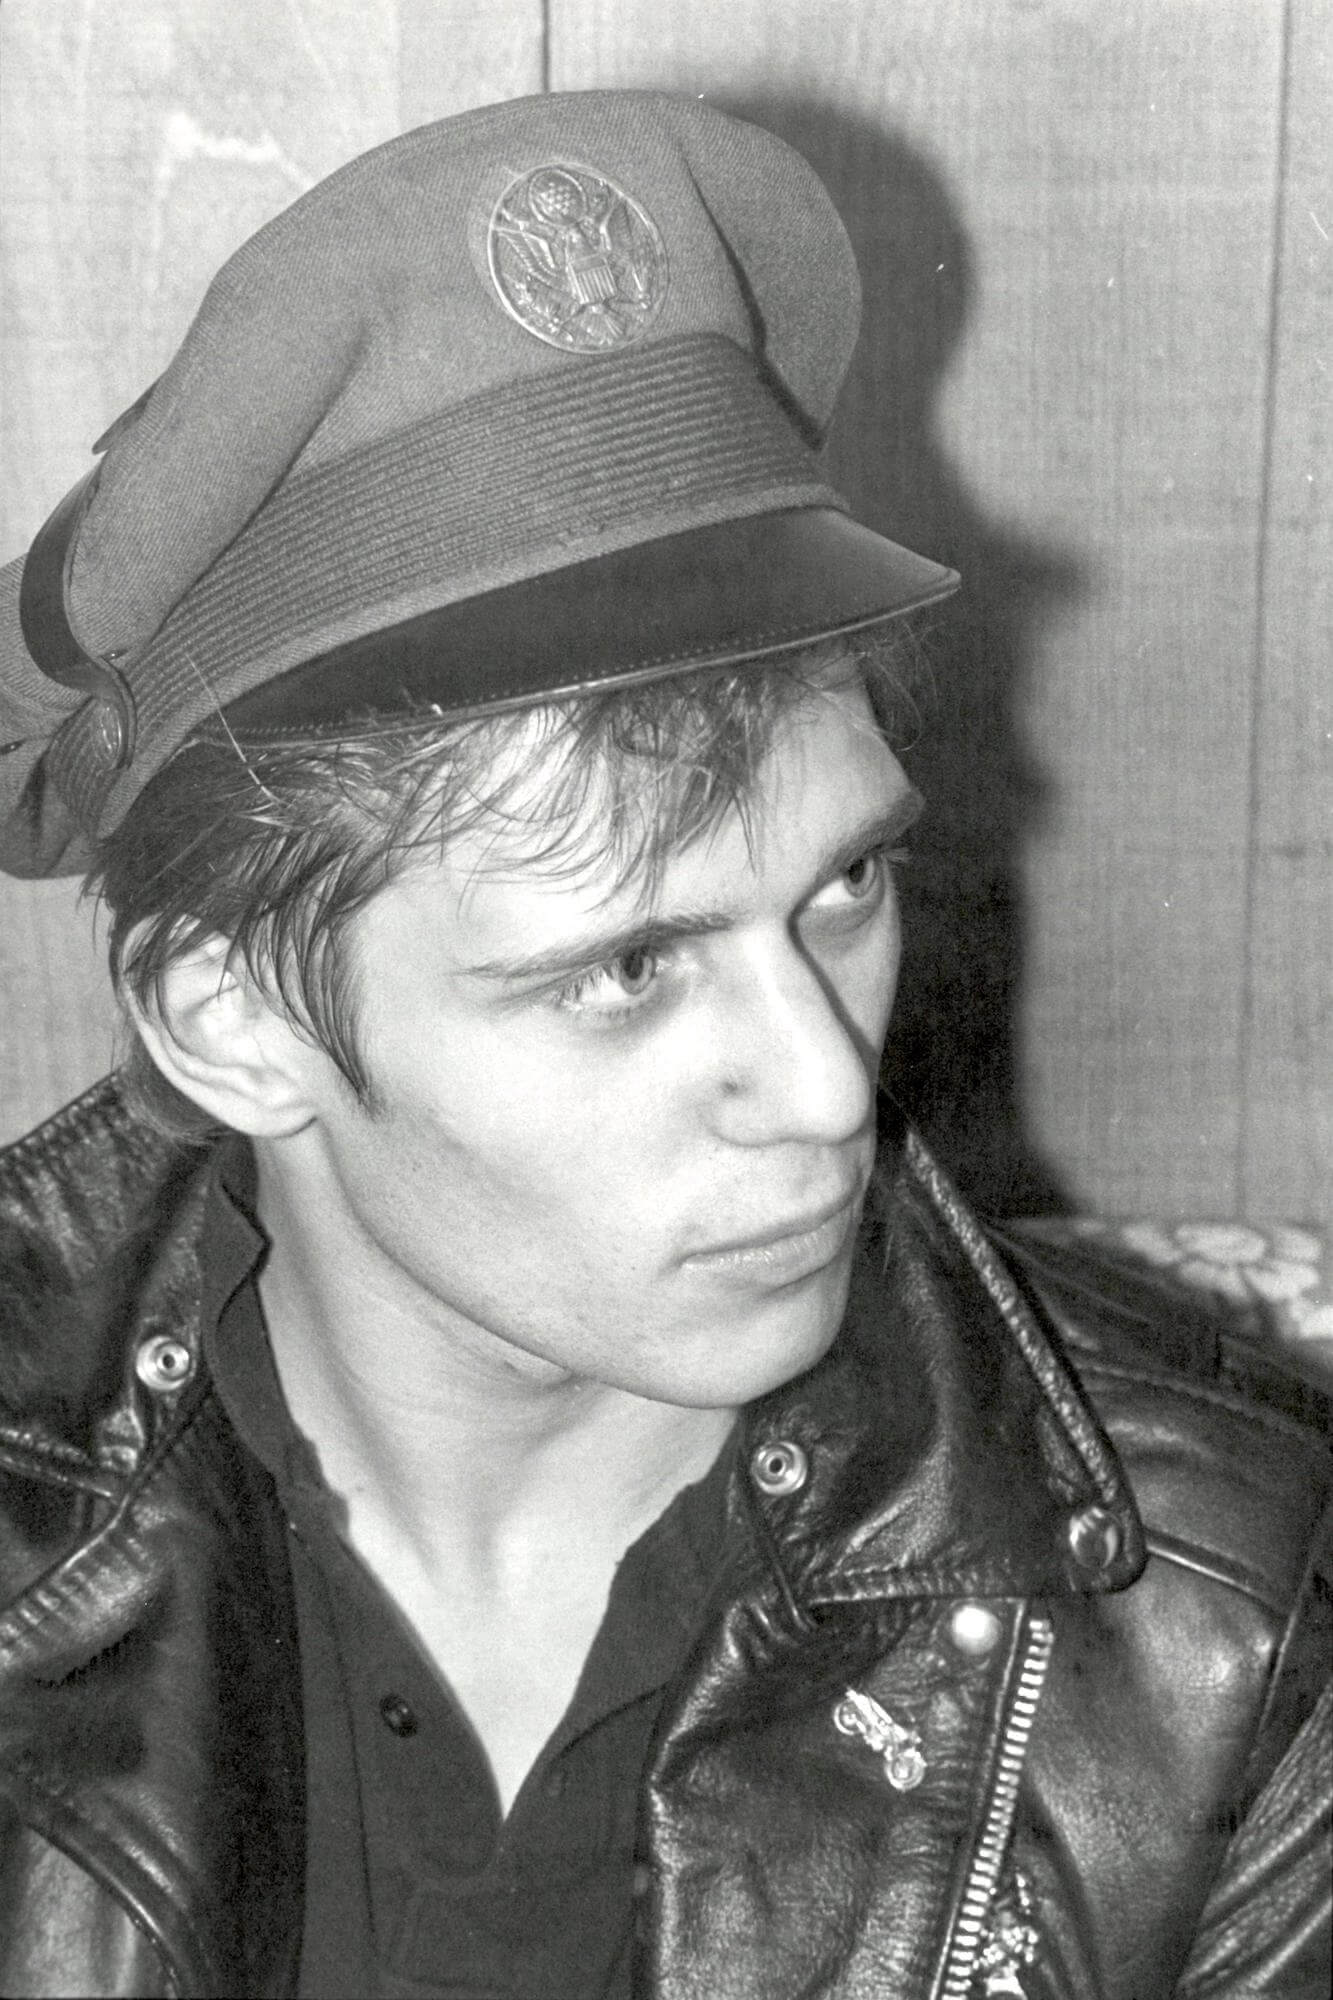 Paul Simonon of The Clash, 1979